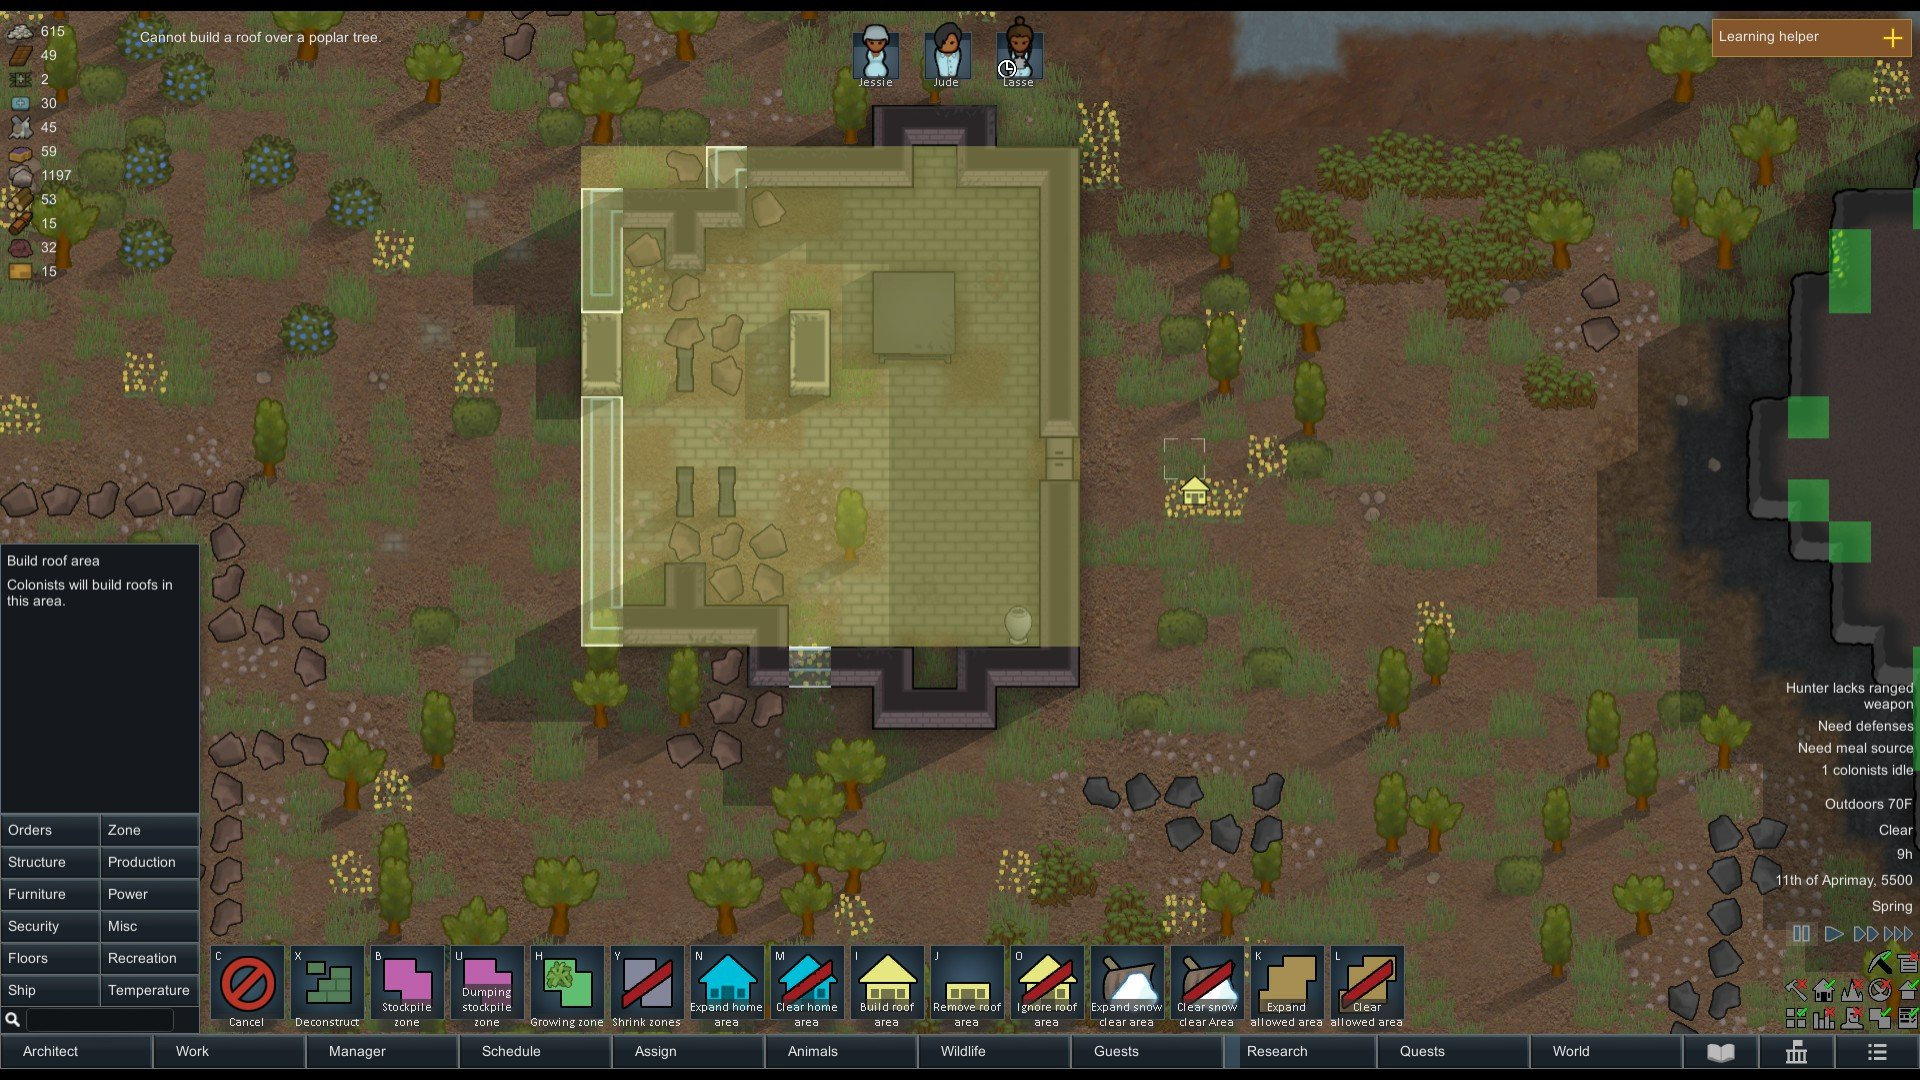 RimWorld - How to Build a Roof